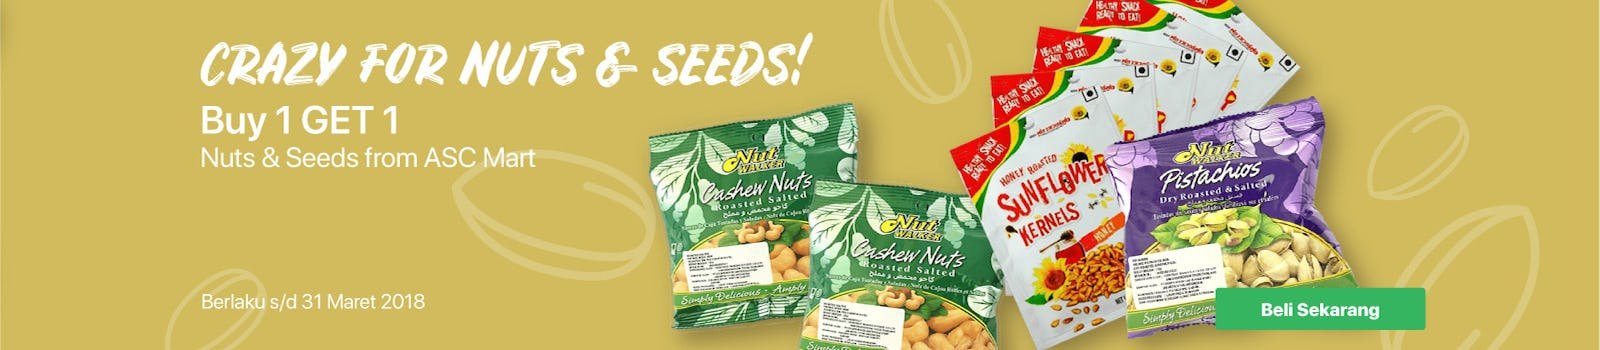 Crazy For Nuts & Seeds